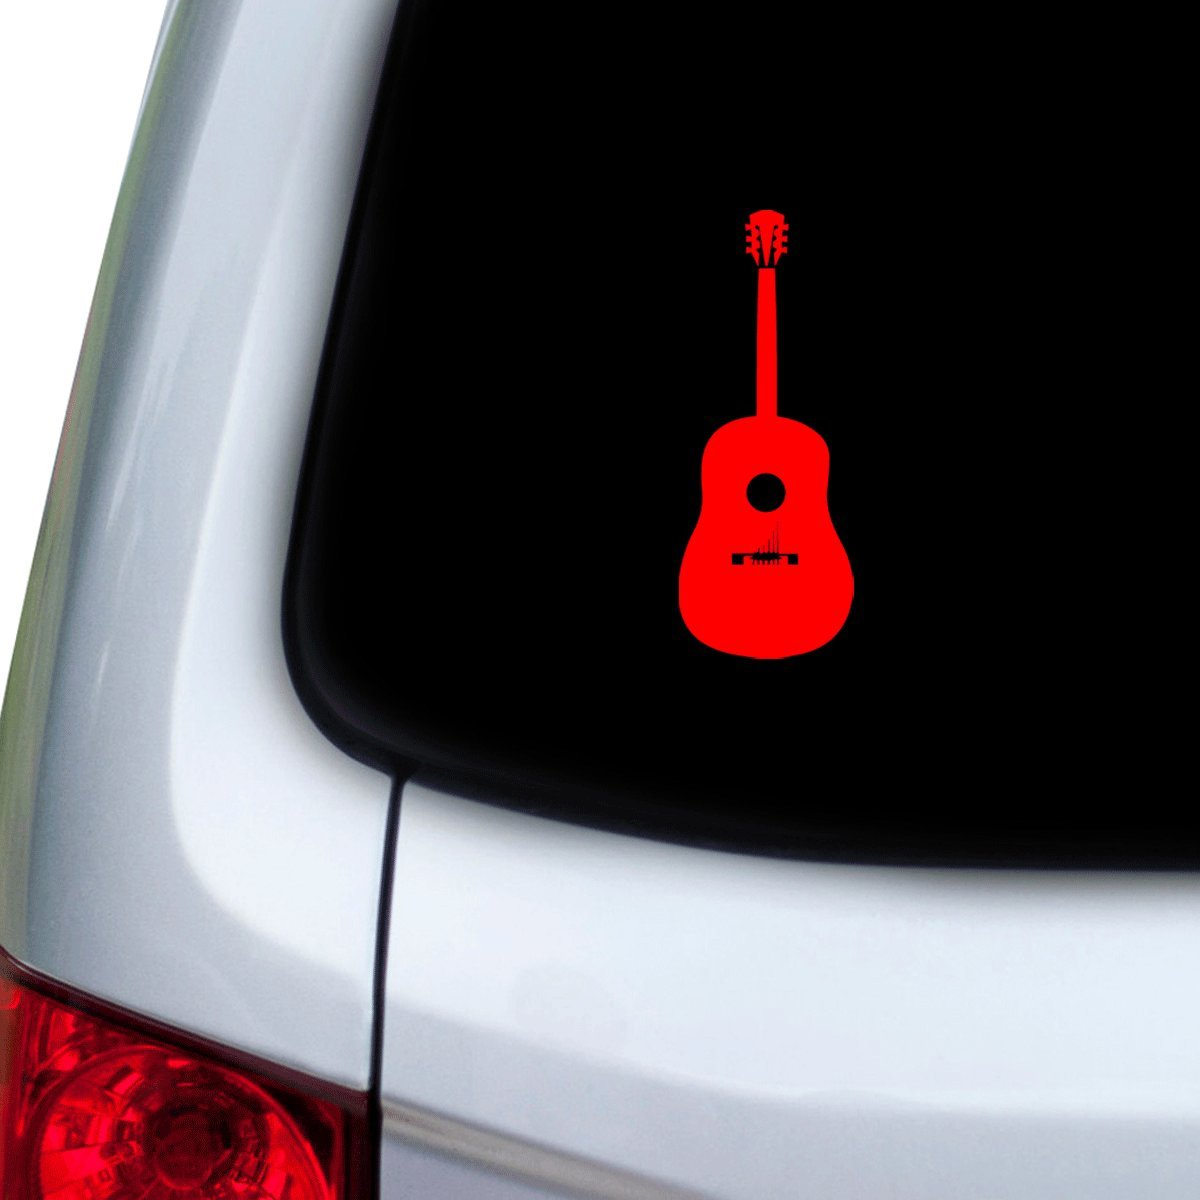 Hoods StickAny Car and Auto Decal Series Acoustic Guitar Sticker for Windows Red Doors